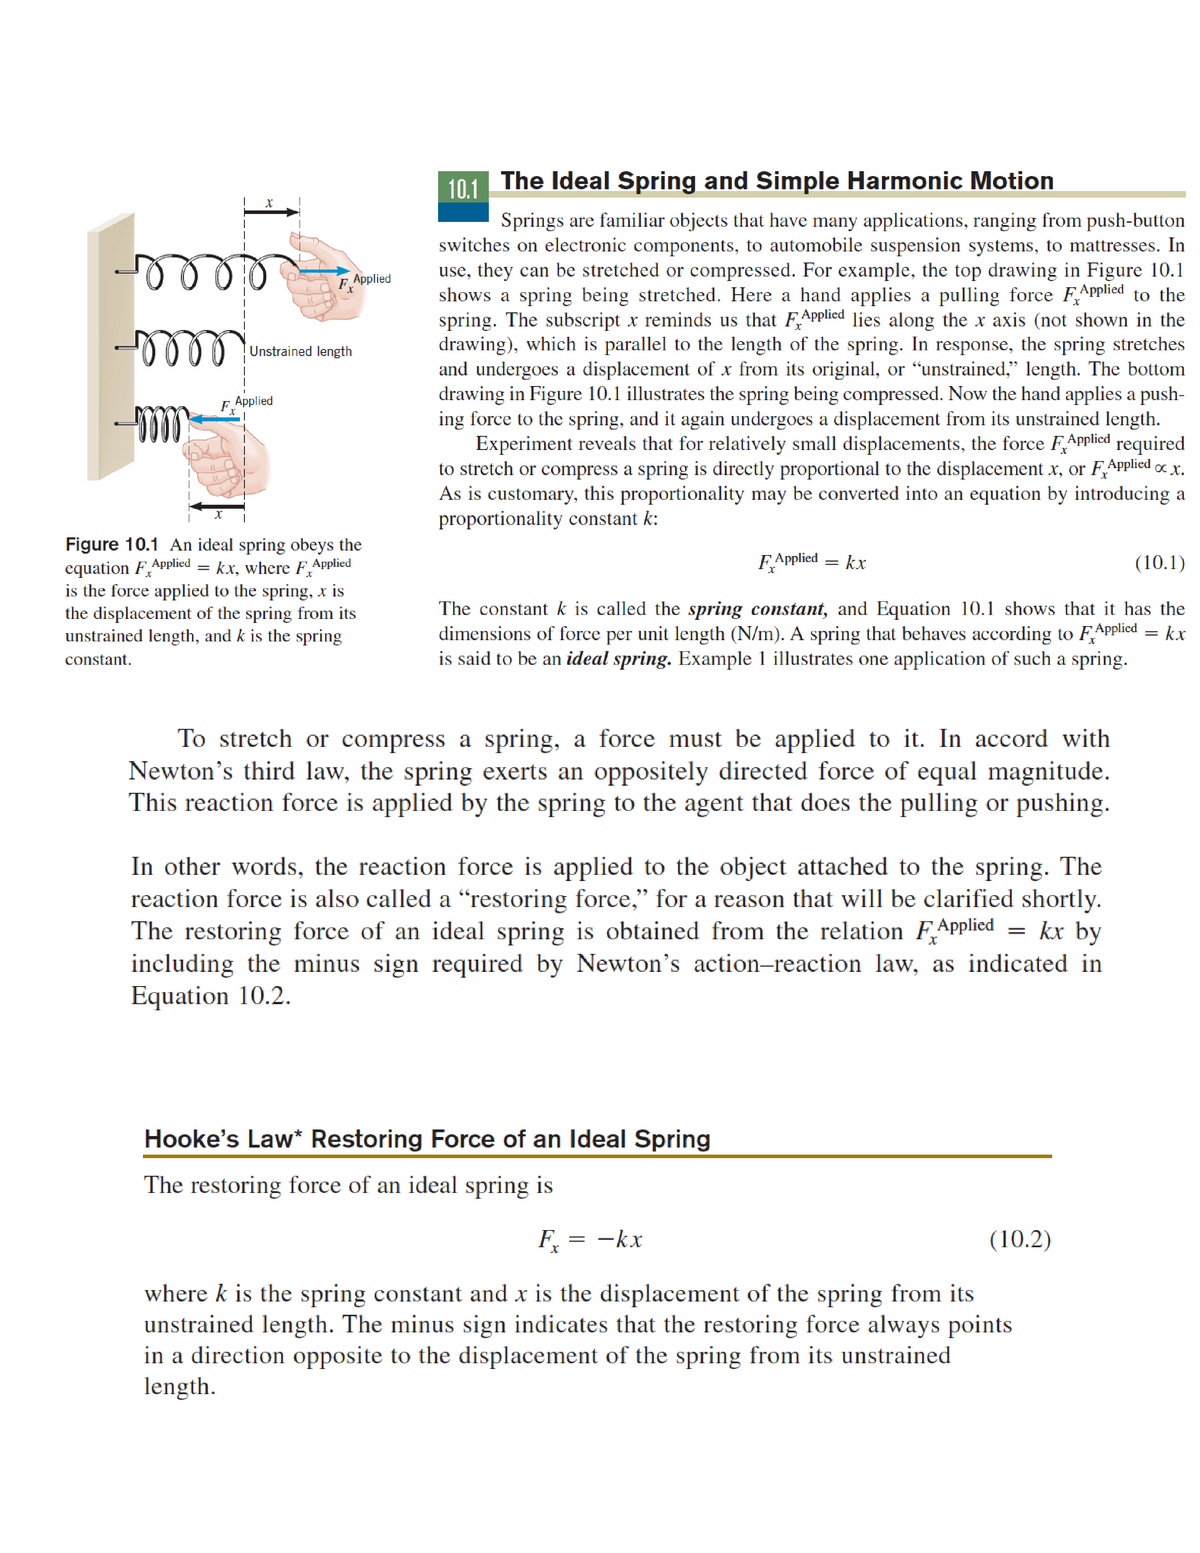 Chap 9 lecture problems and notes - 03 64 130: Introductory